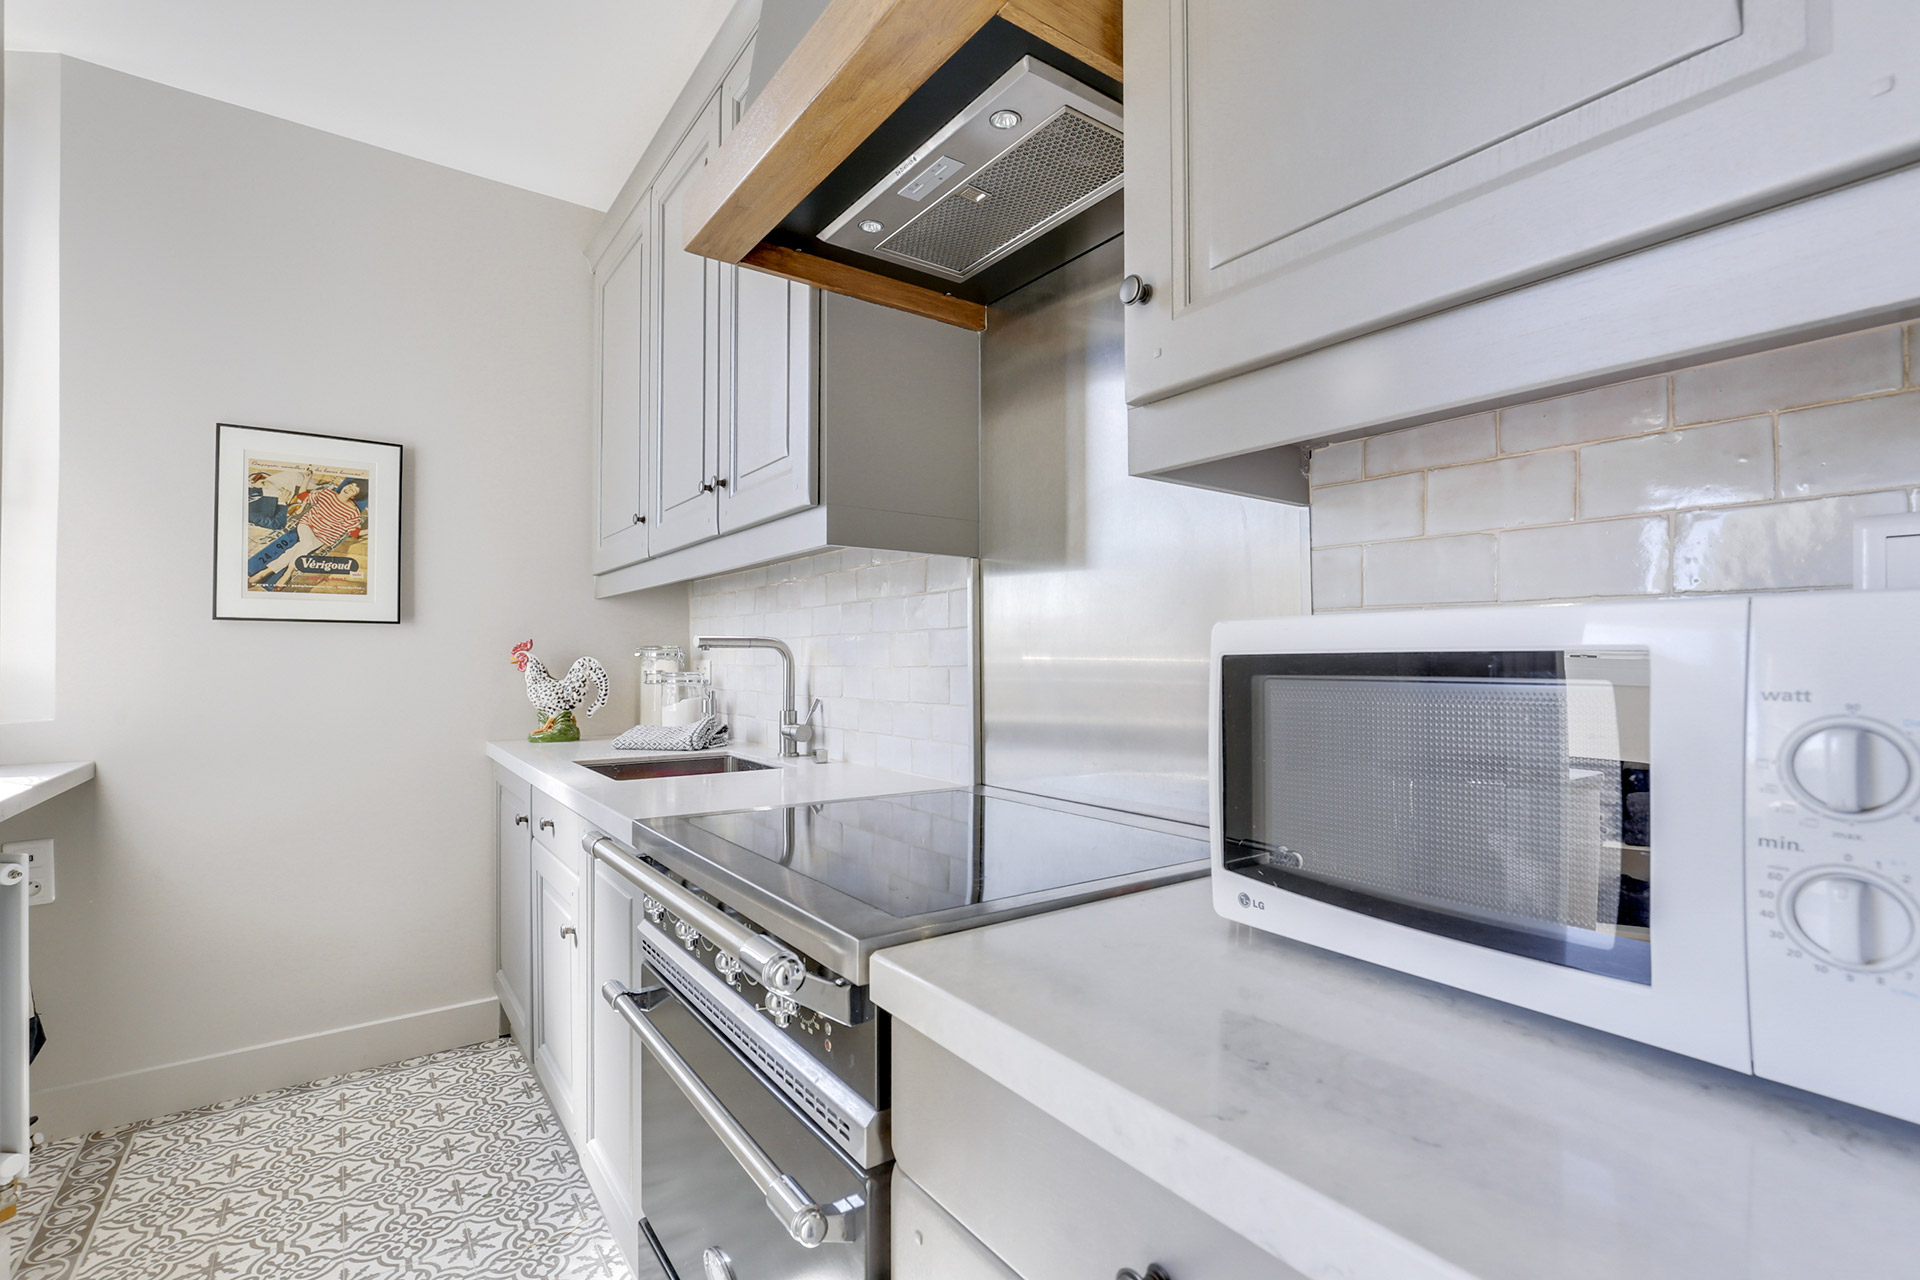 Cook your own meals in this fully-equipped kitchen in the Vivarais vacation rental by Paris Perfect